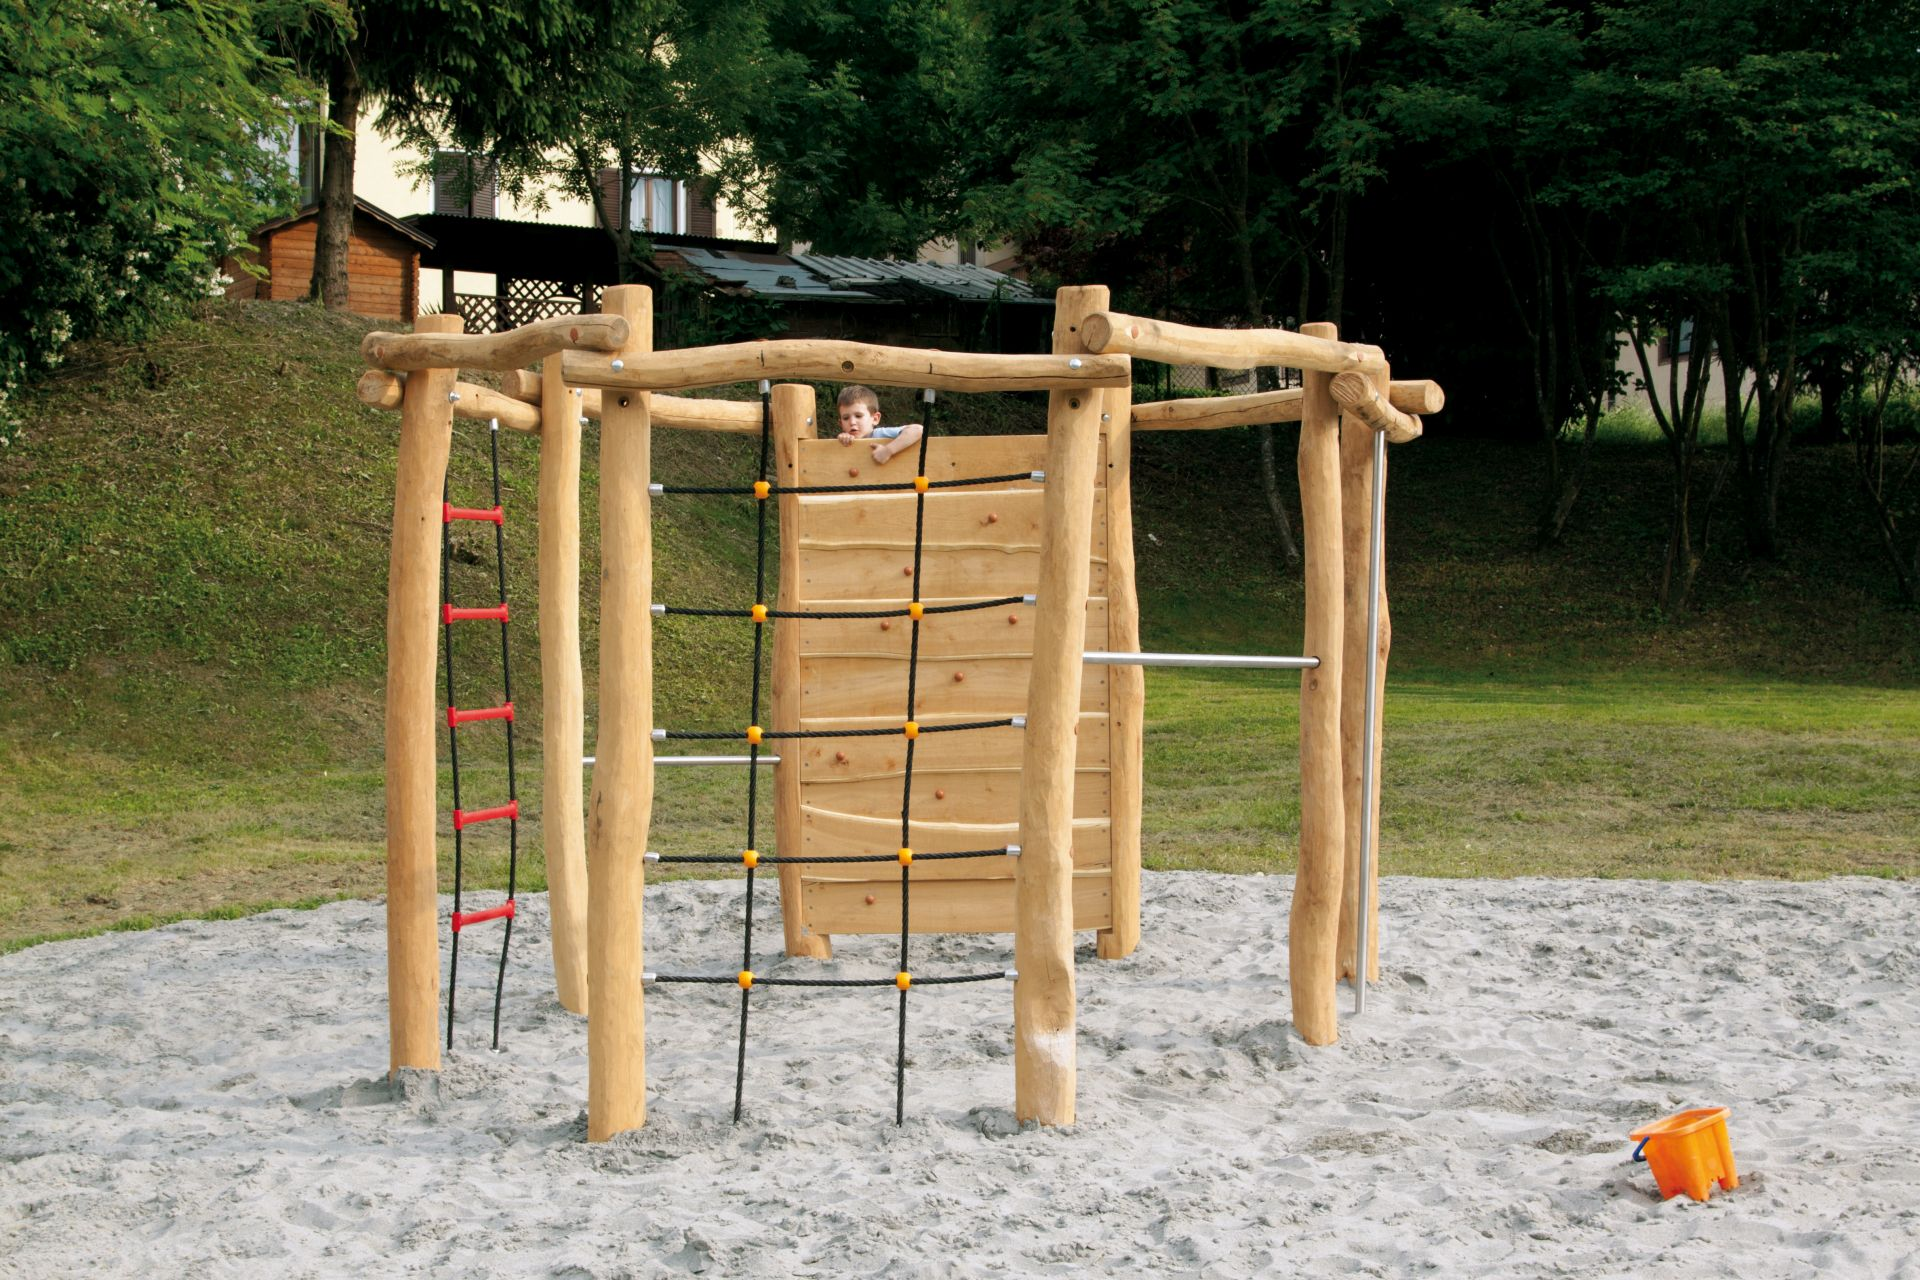 Holzhof COUNTRY (FACILITIES IN ROBINIA WOOD) Octagonal climbing system in robinia, underground